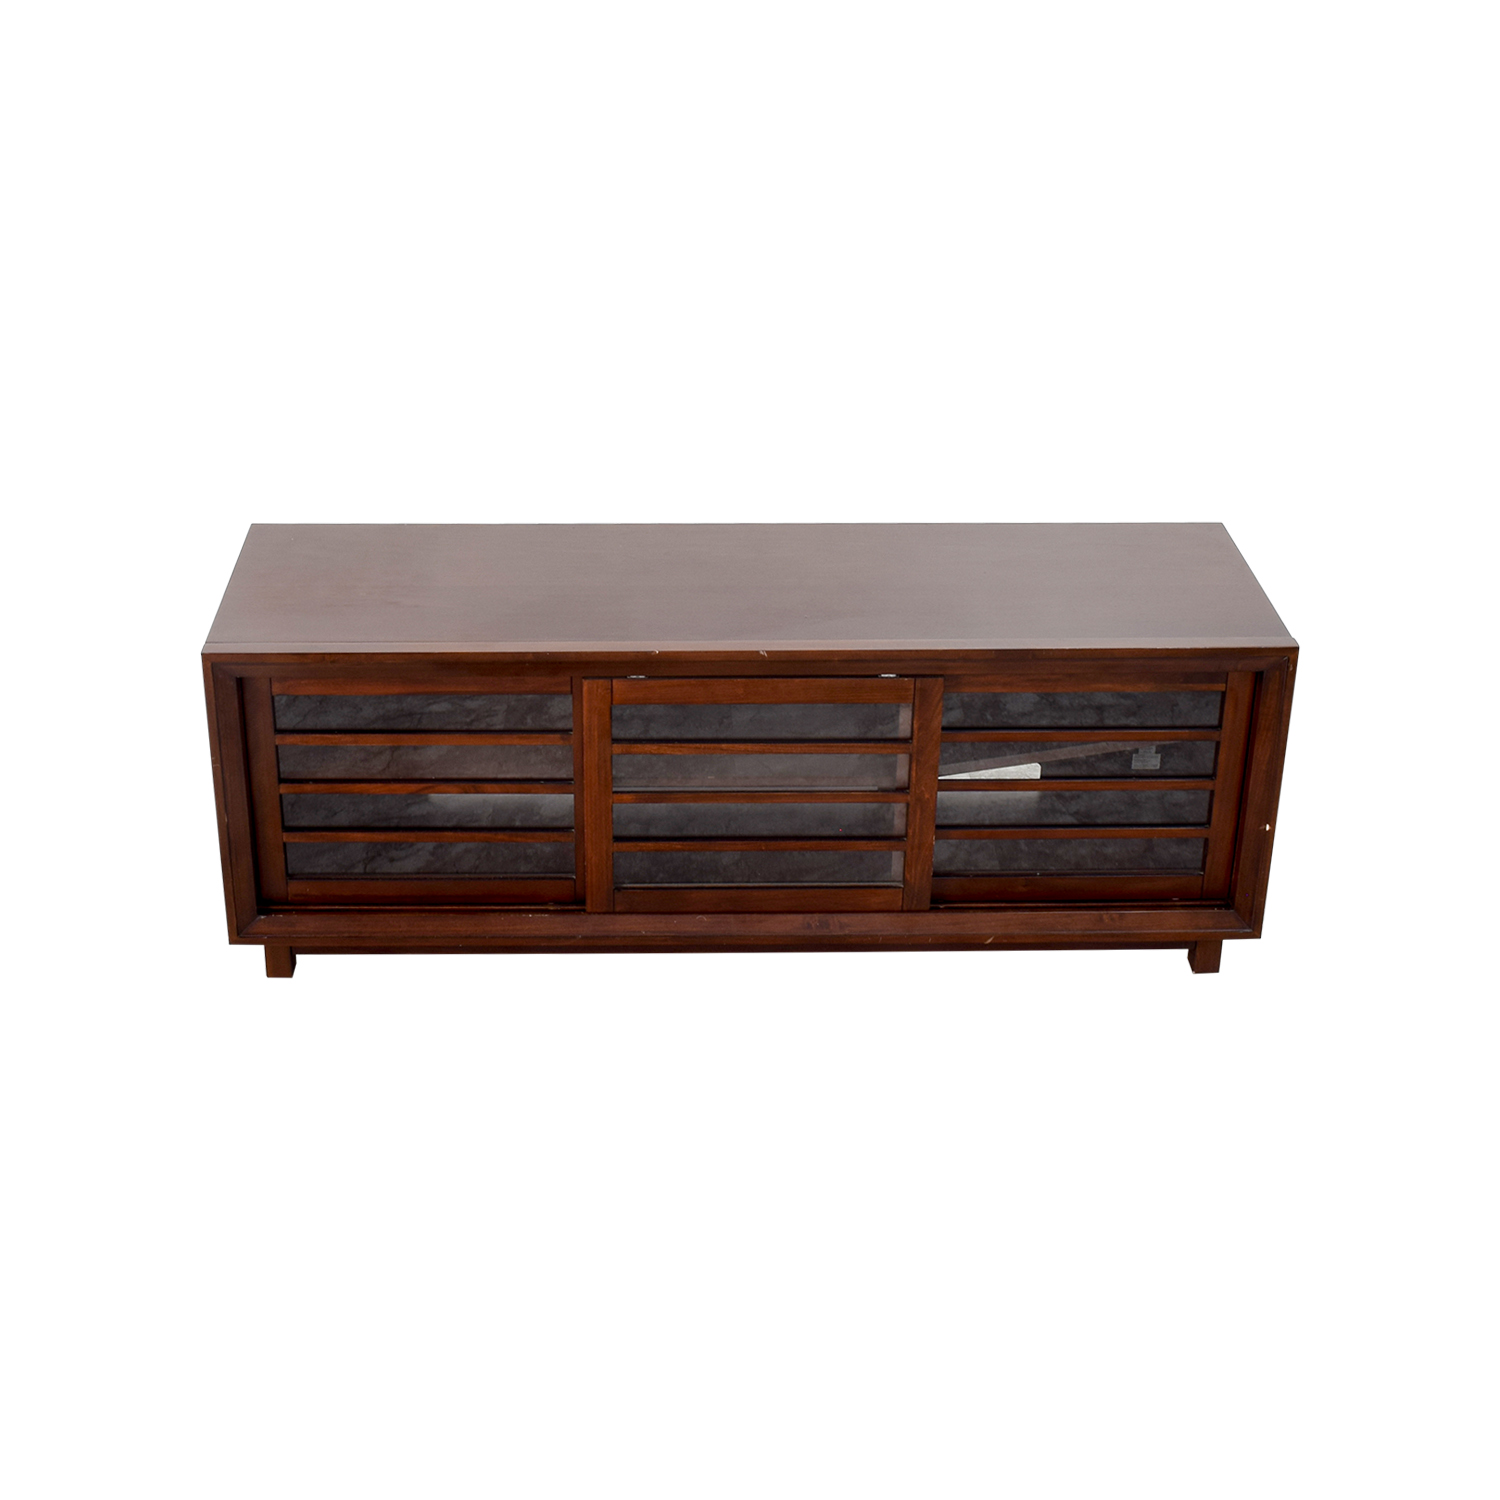 Crate & Barrel Crate & Barrel Wood and Glass Media Stand Brown